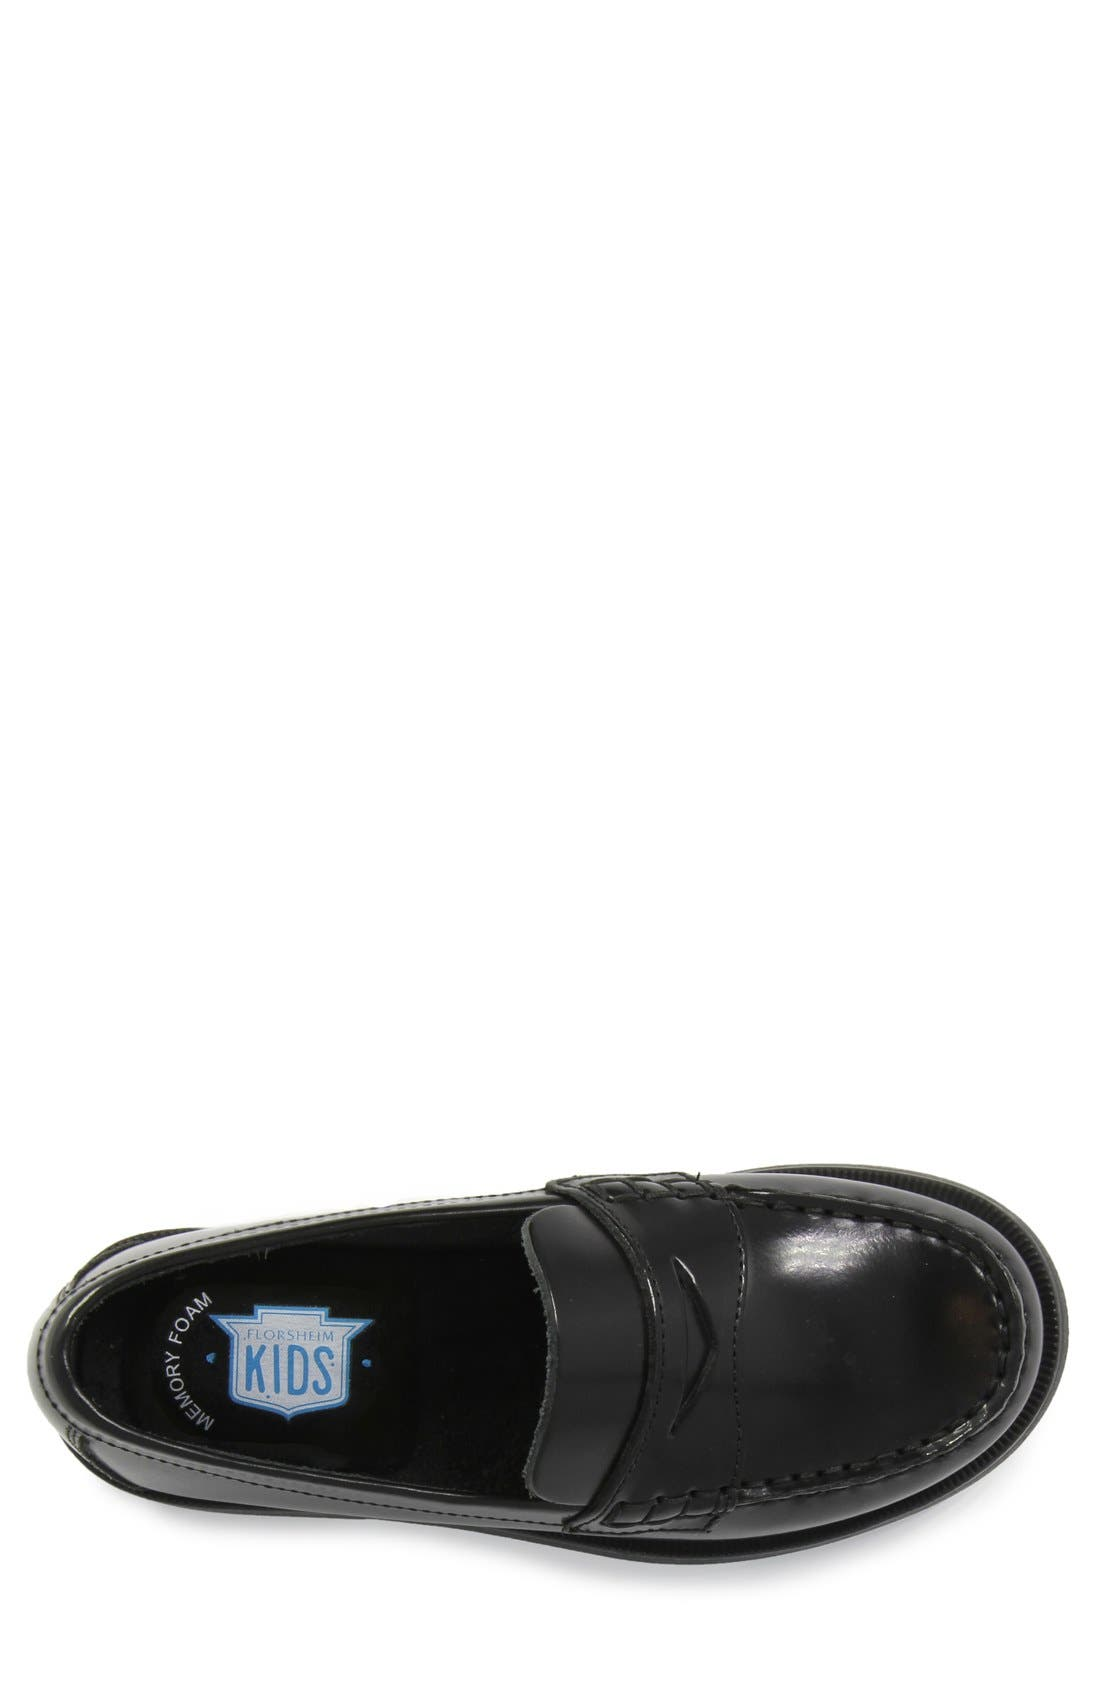 'Croquet' Penny Loafer,                             Alternate thumbnail 3, color,                             Black